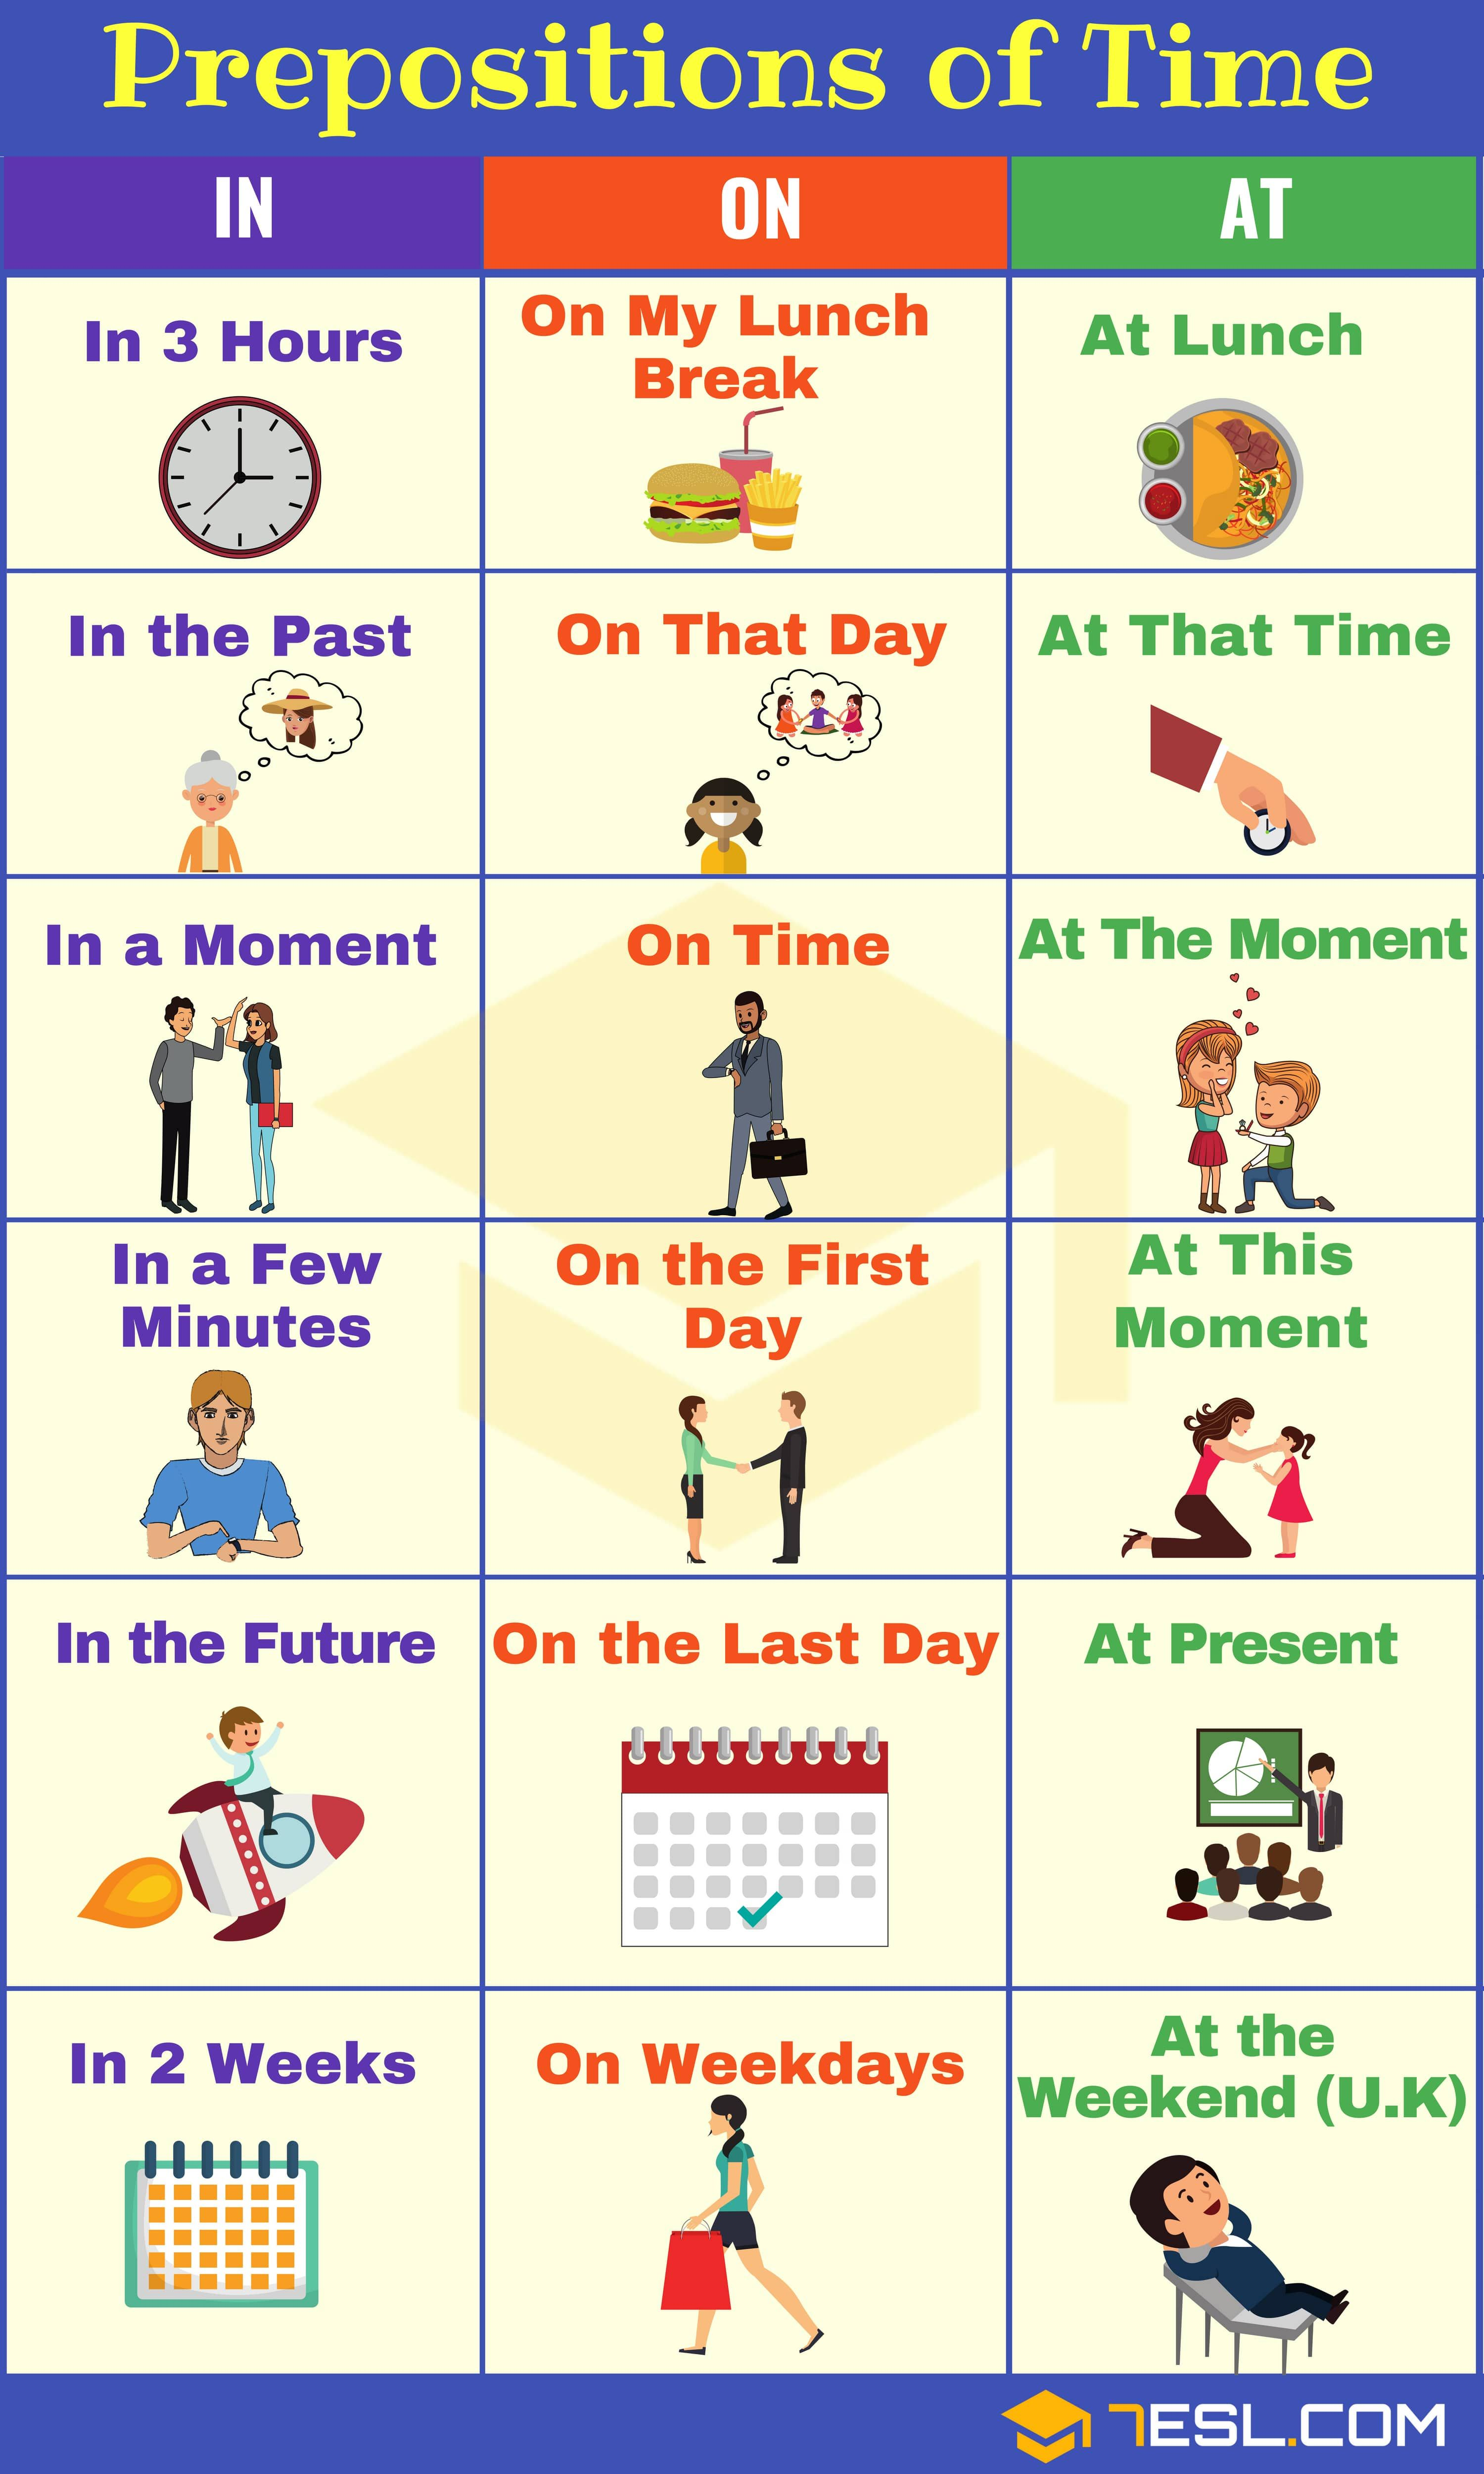 Prepositions Of Time Useful List Meaning Amp Examples